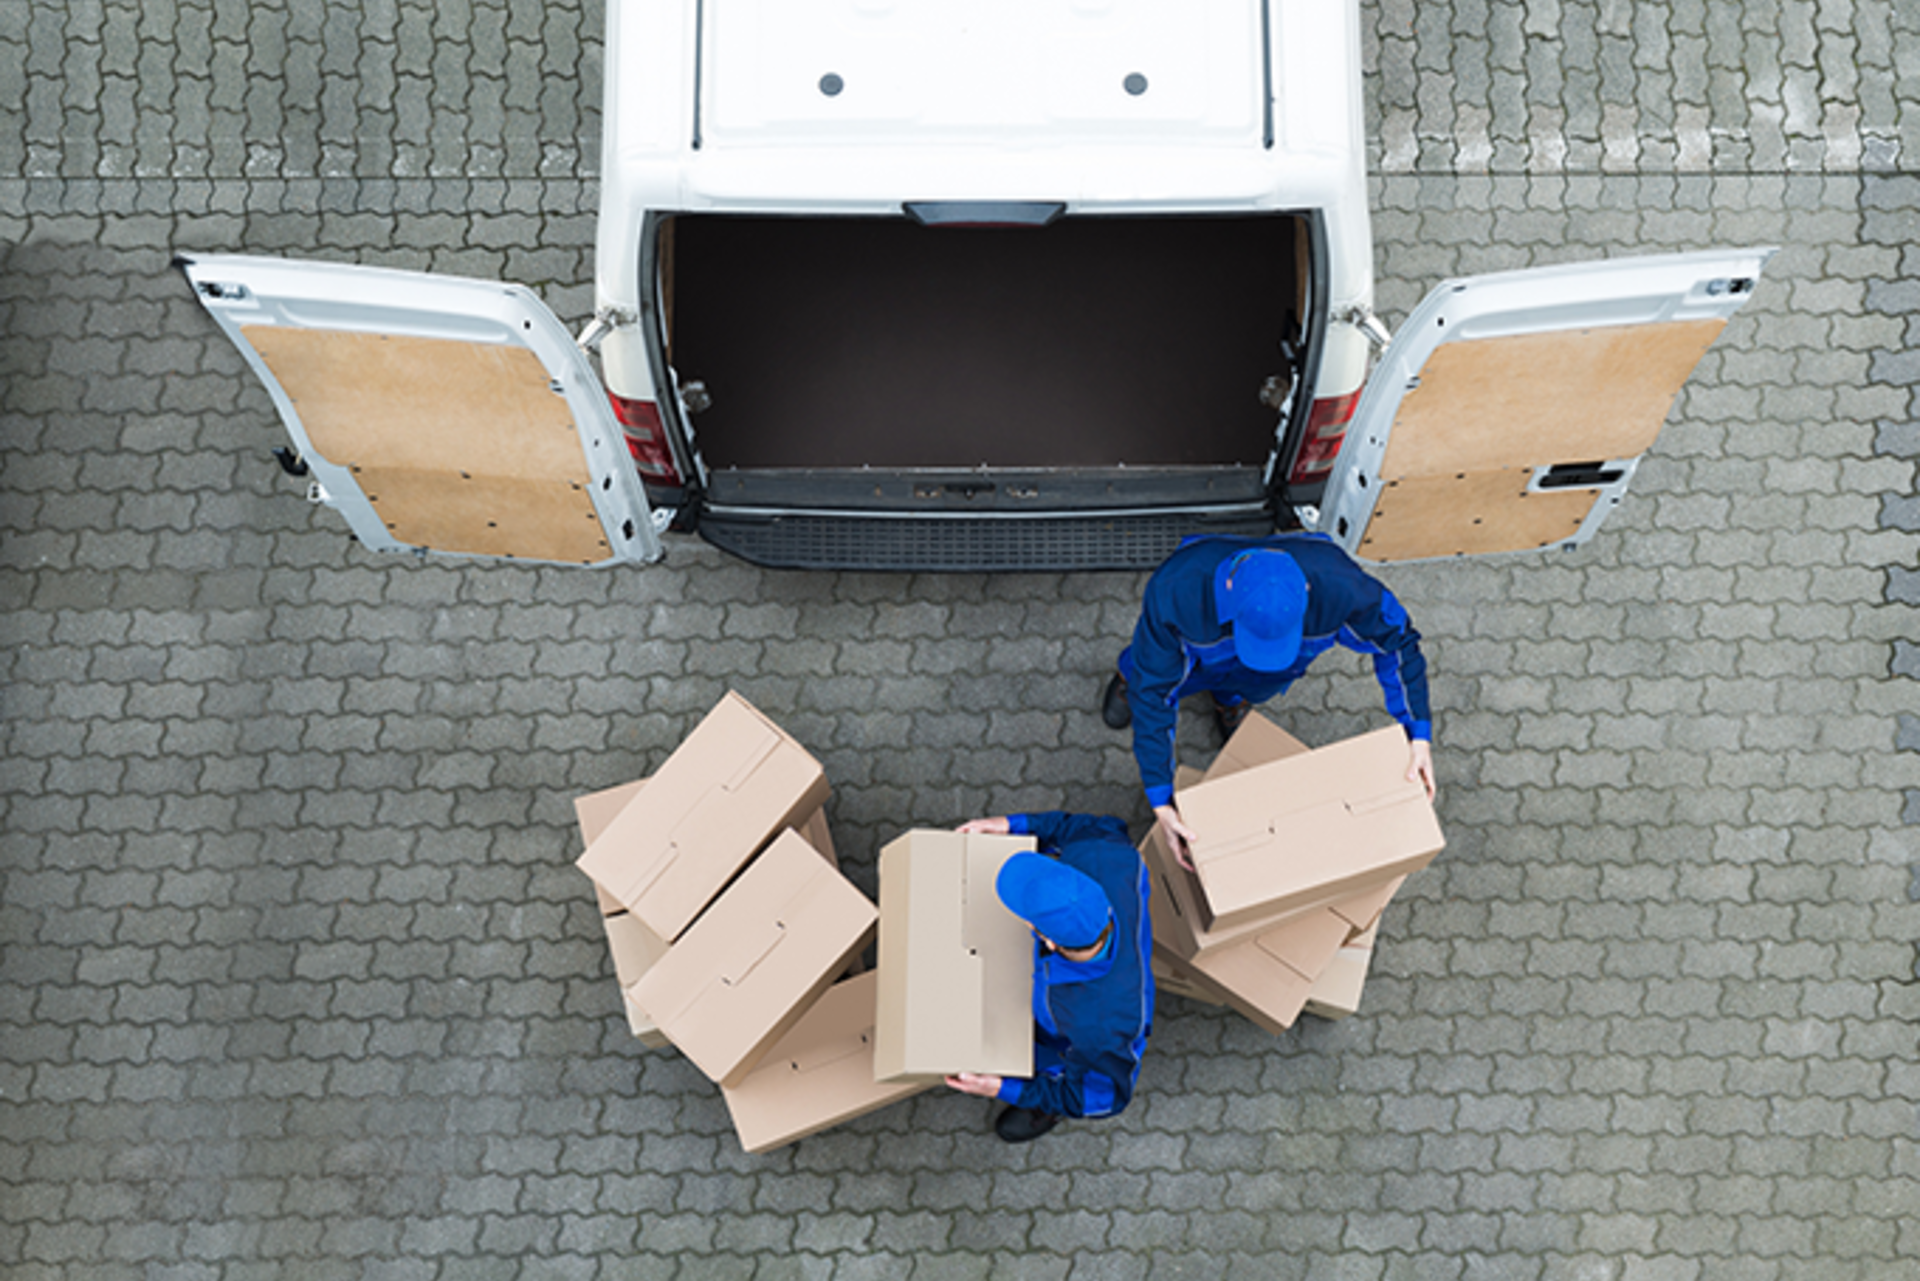 Retailers ramp up delivery options